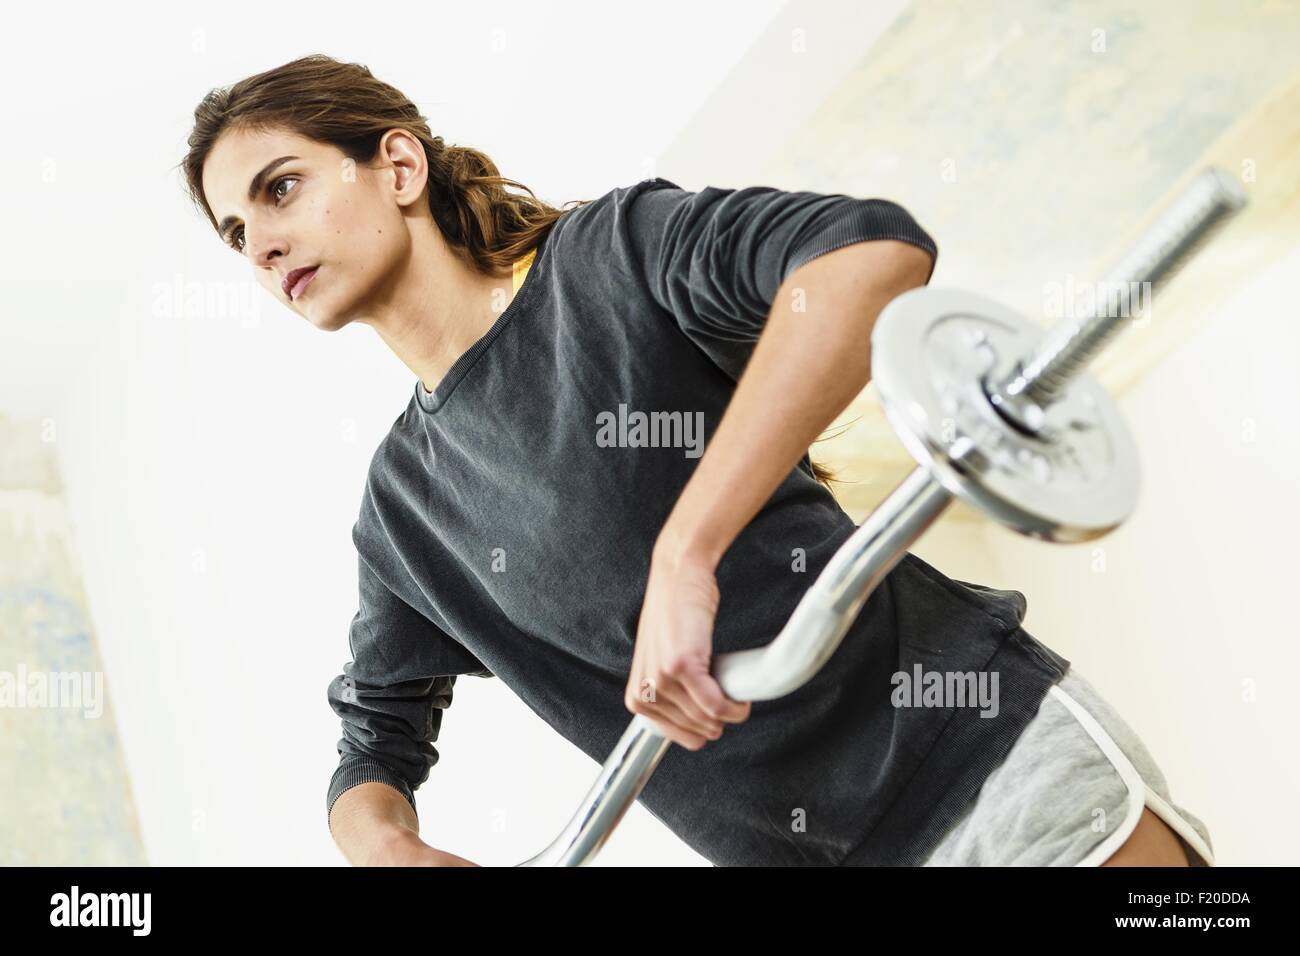 Angled view of young woman lifting barbell in living room - Stock Image